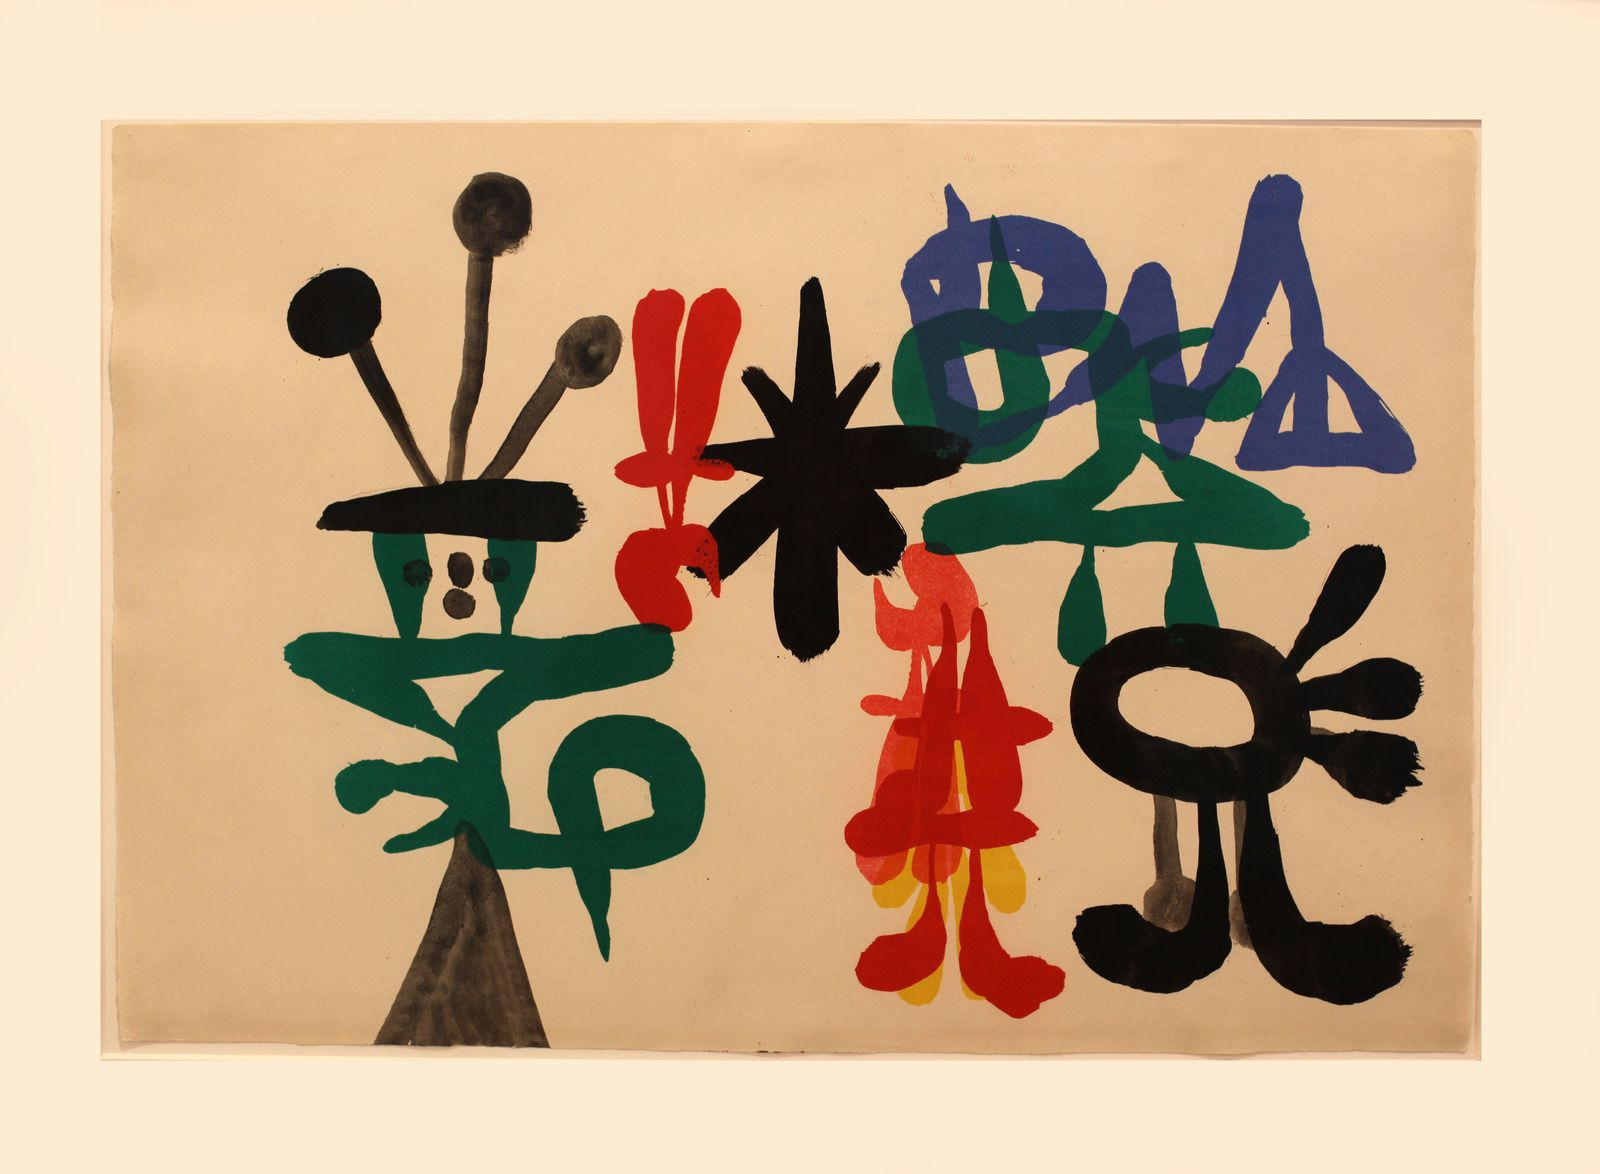 """Deux personnages"", 1938 de Joan MIRO - Courtesy Galerie Lelong & Co. Paris © Photo Éric Simon"